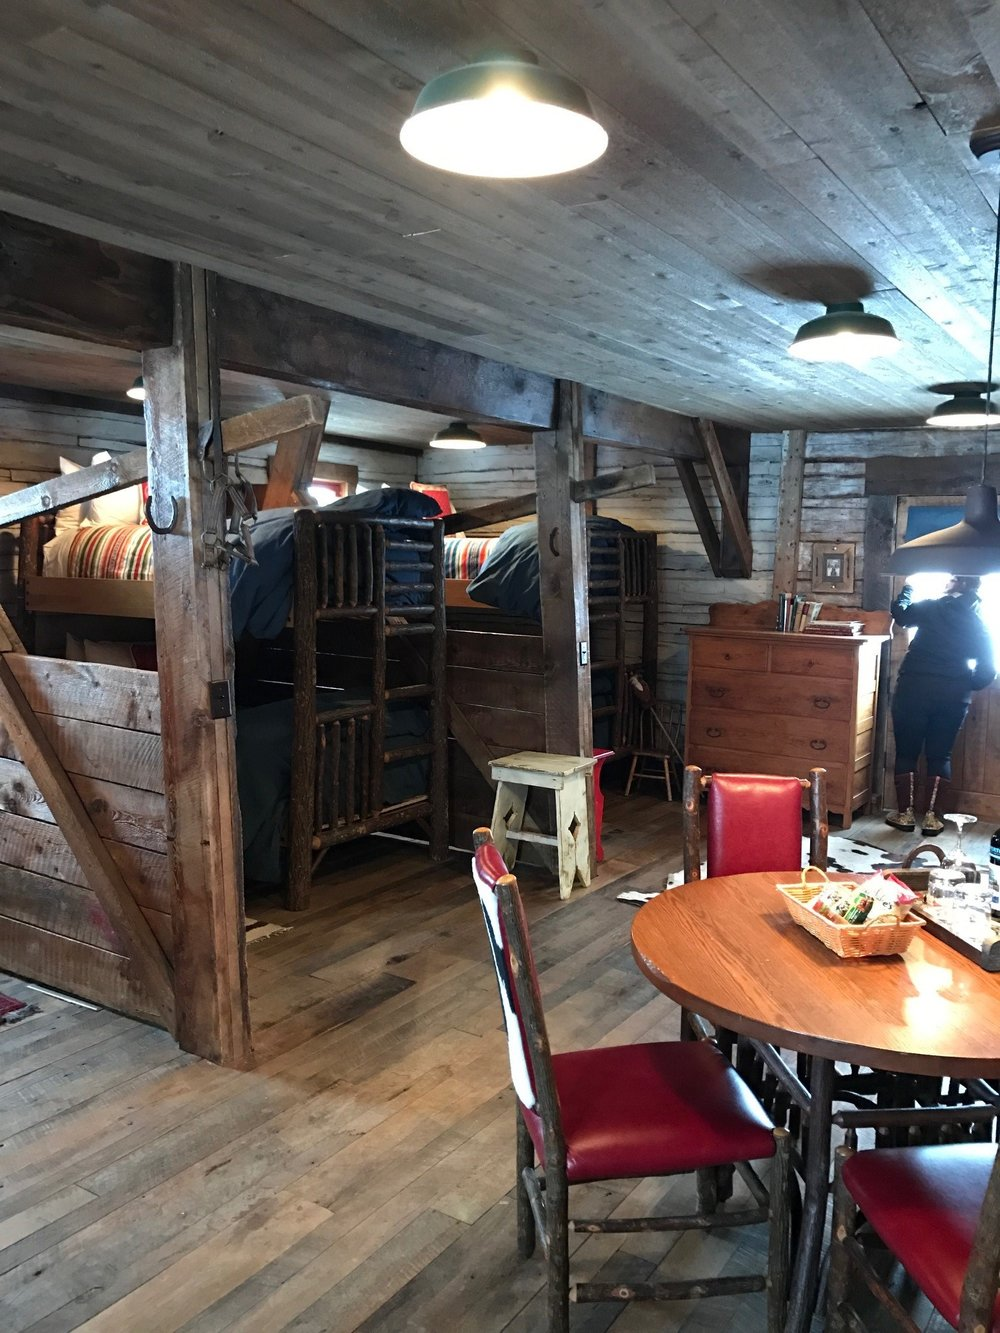 Bunkbeds in the barn - perfect for families or groups!